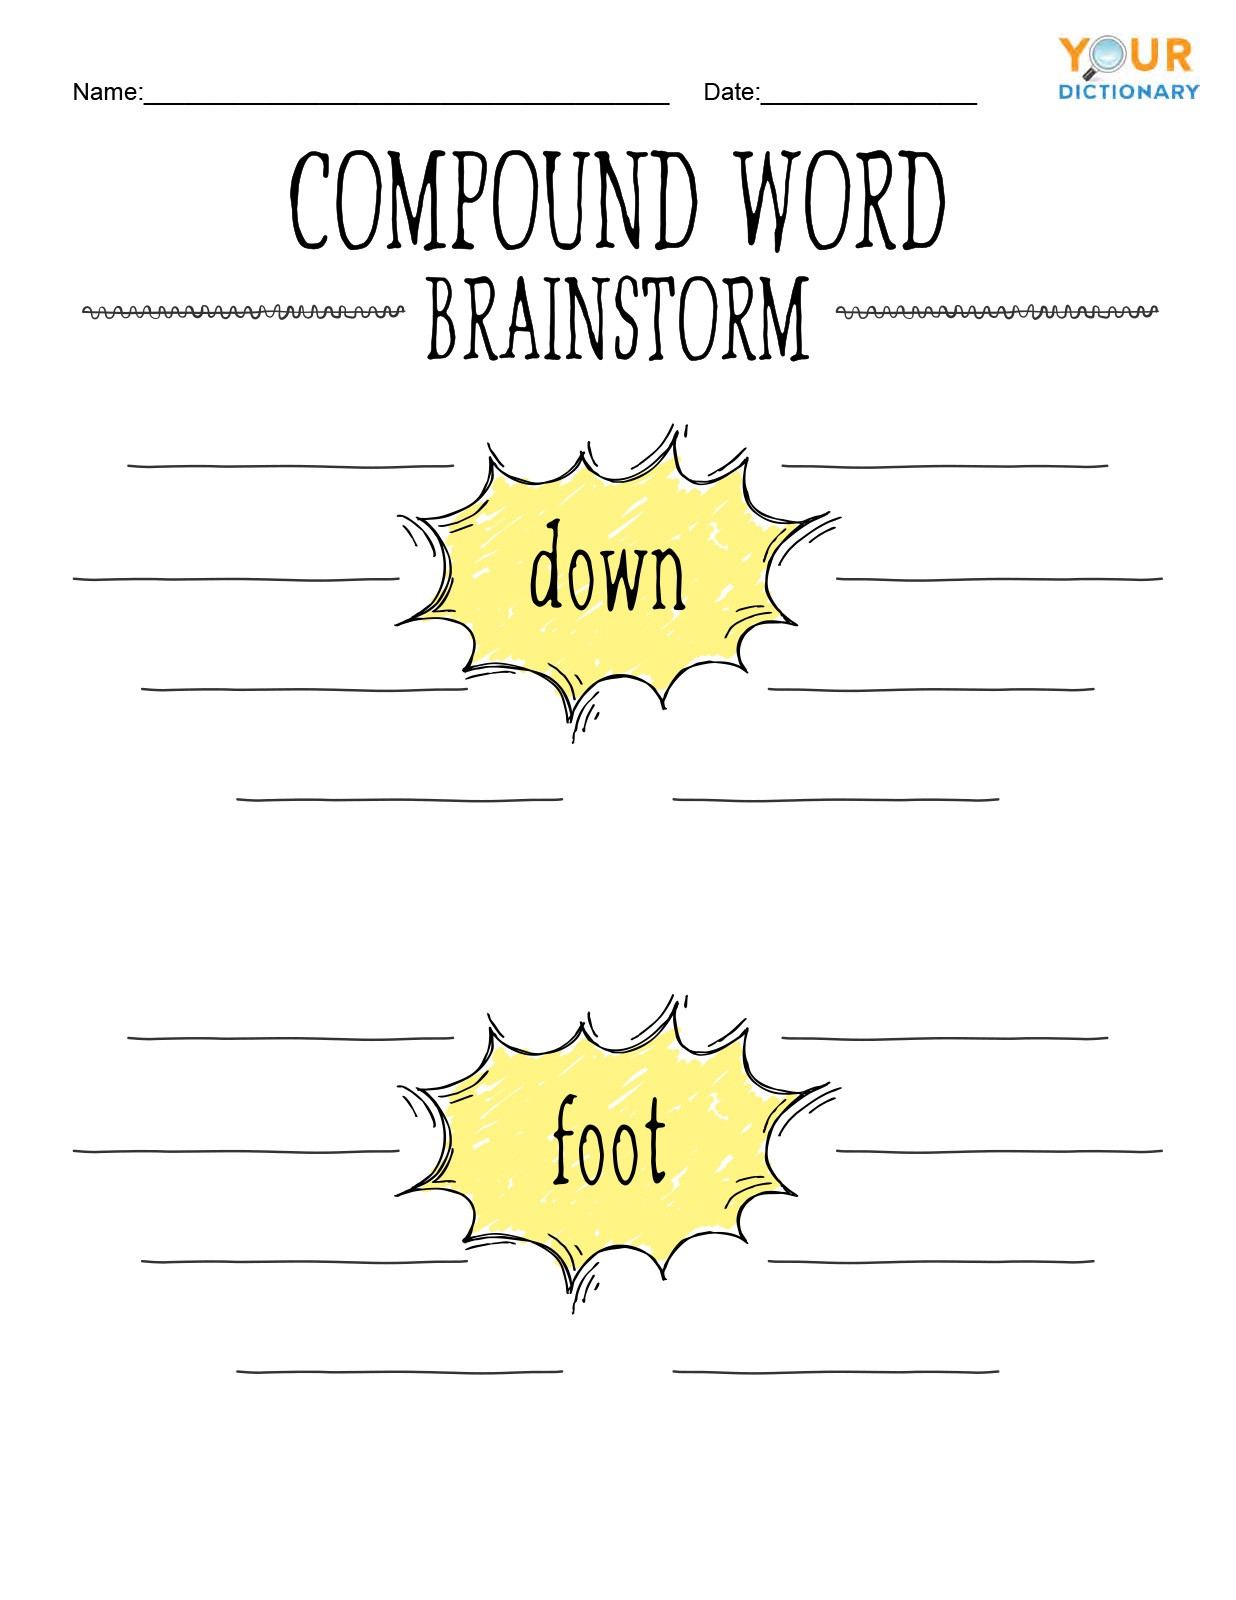 Root Word Worksheets Middle School Fun Exercises for Pound Words